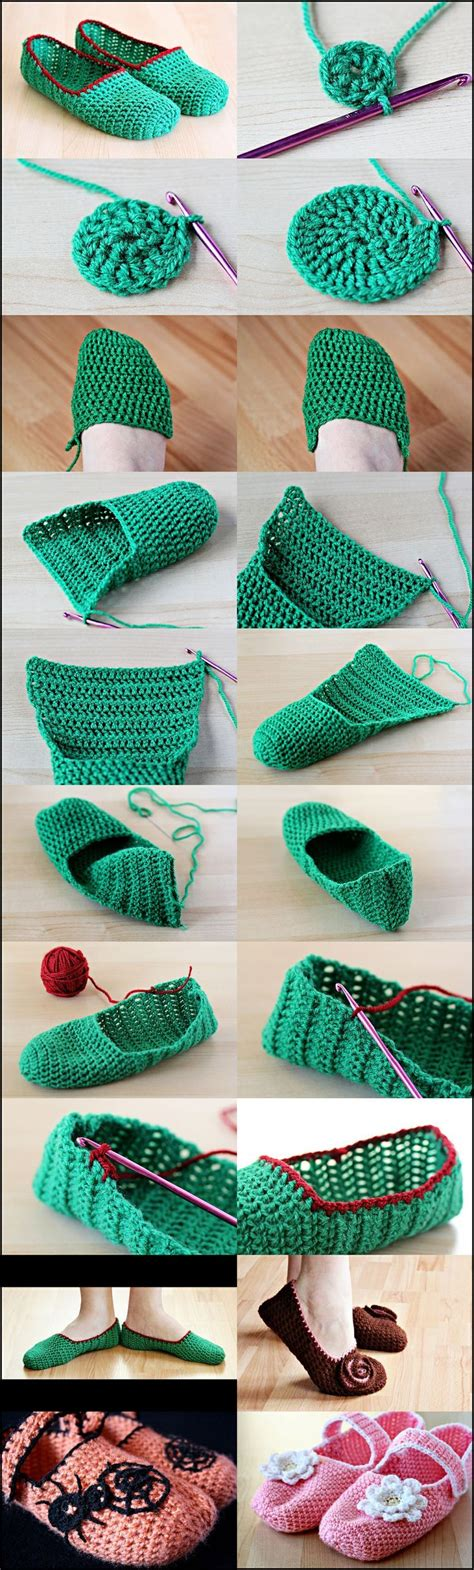 step by step crochet slippers how to crochet slippers step by step crochet and knit